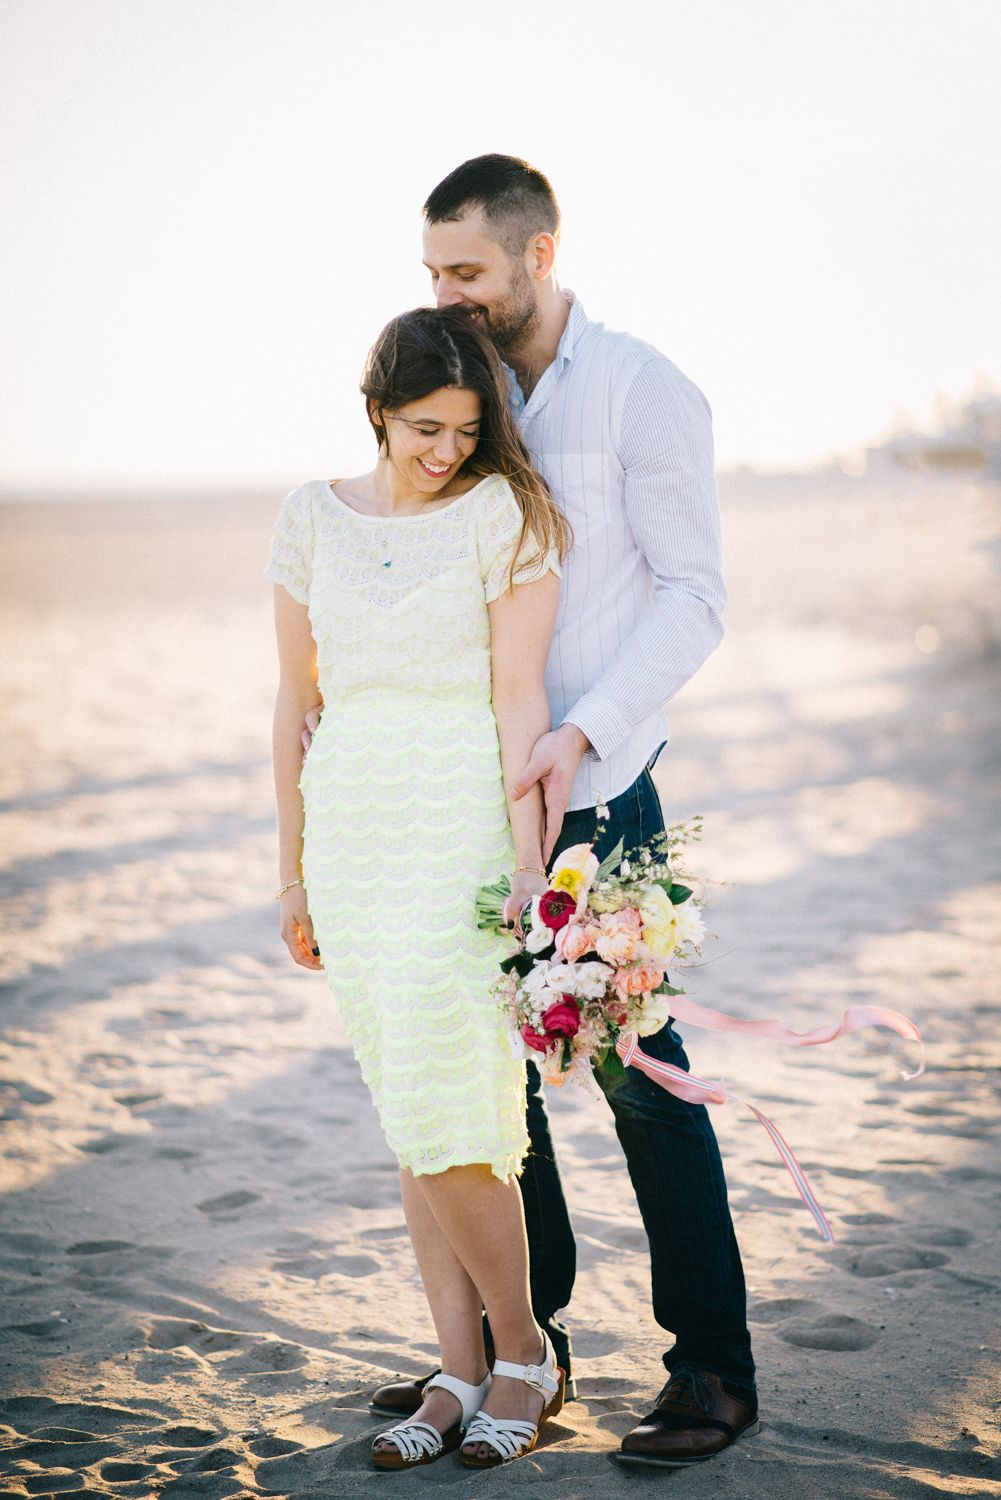 Things are heating up with these summer engagement outfit ideas